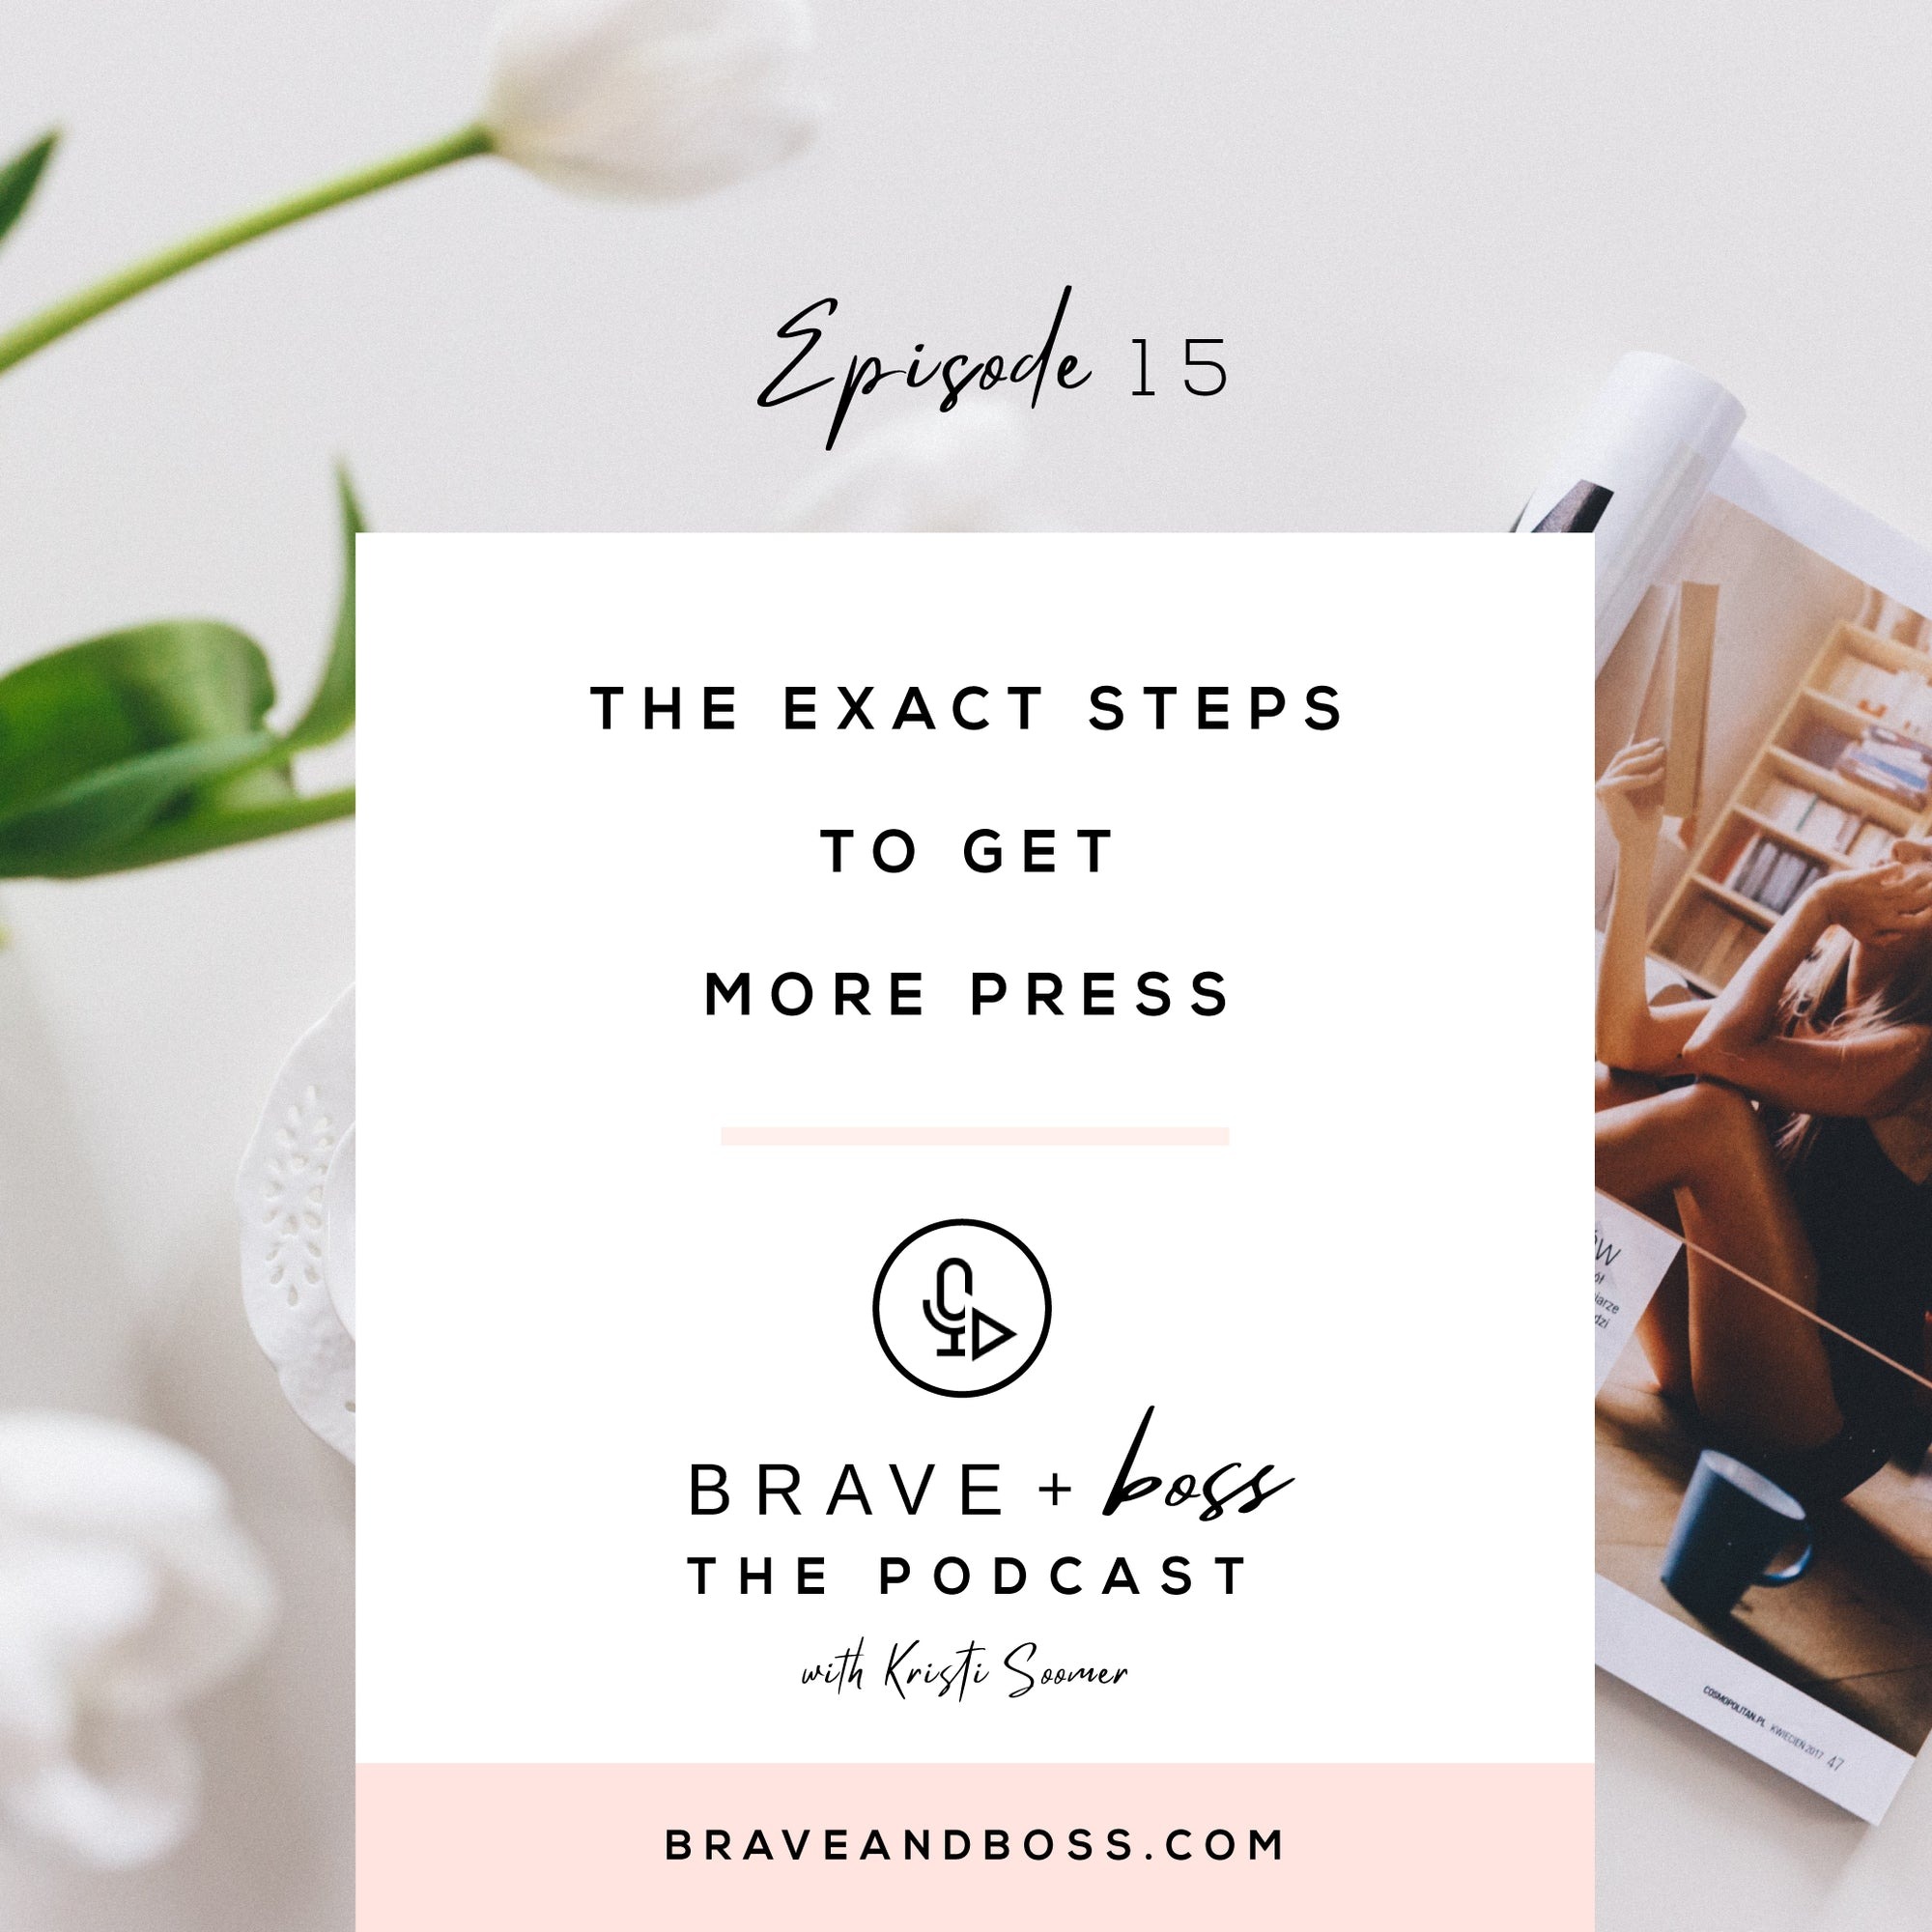 The Exact Steps to get More Press